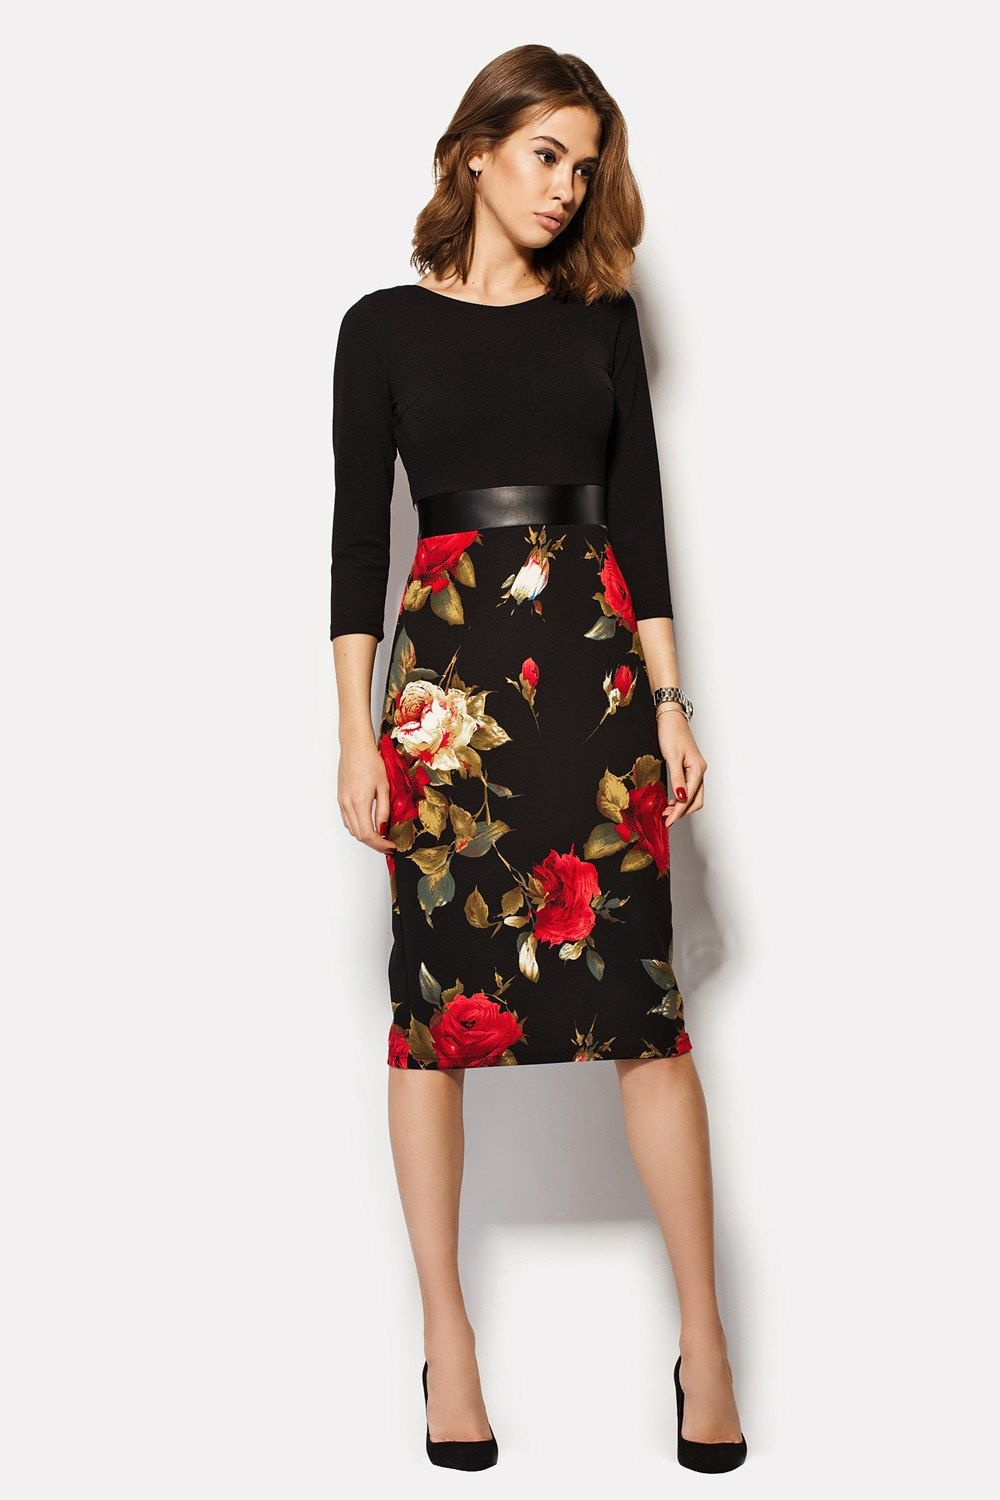 Smart Casual Dress With Roses Highwaisted Dress Floral Black